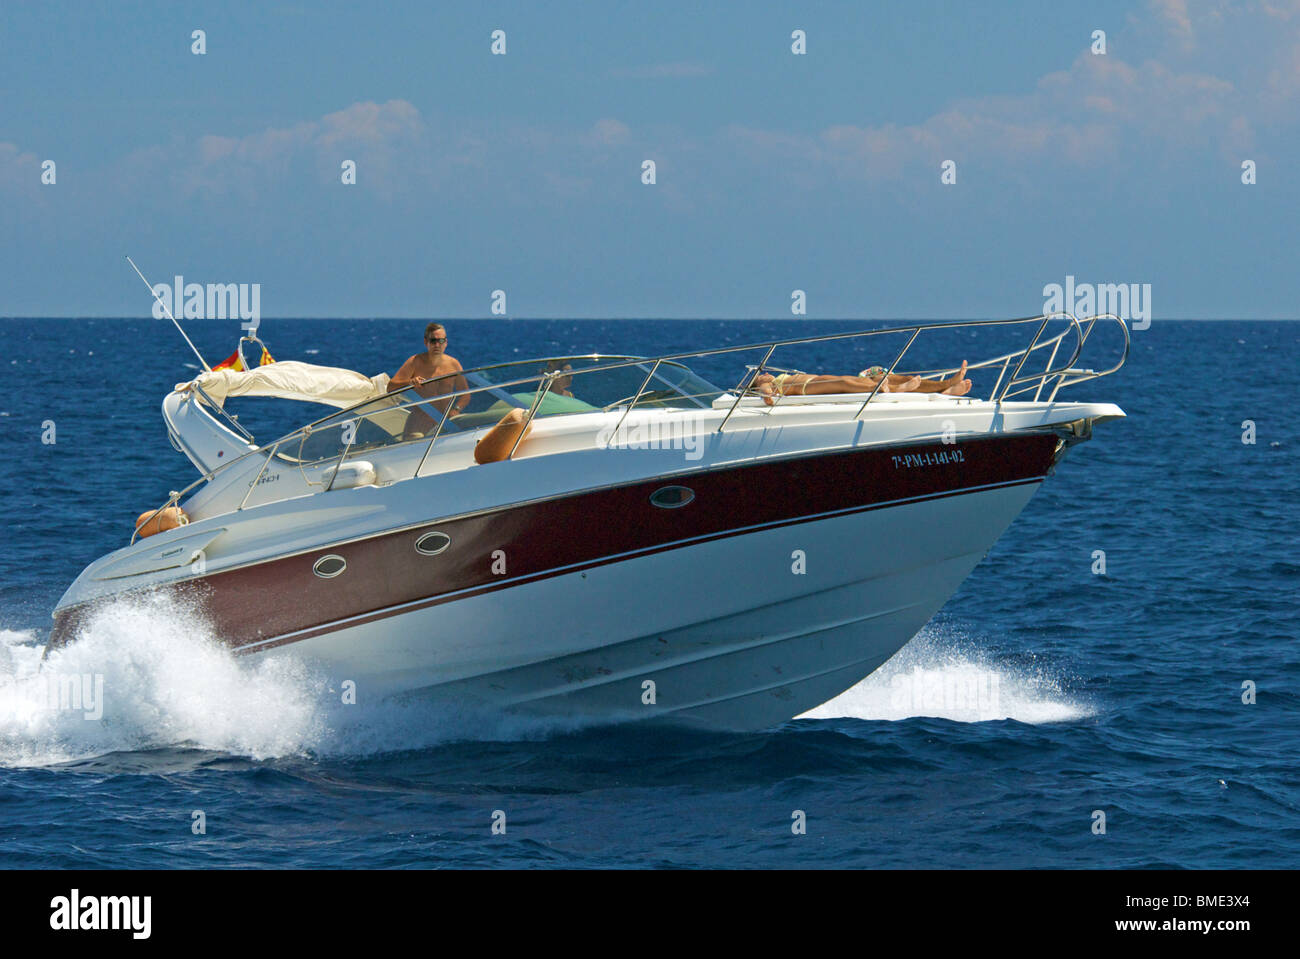 Speedboat in the Mediterranean off the coast of Mallorca in Spain. - Stock Image